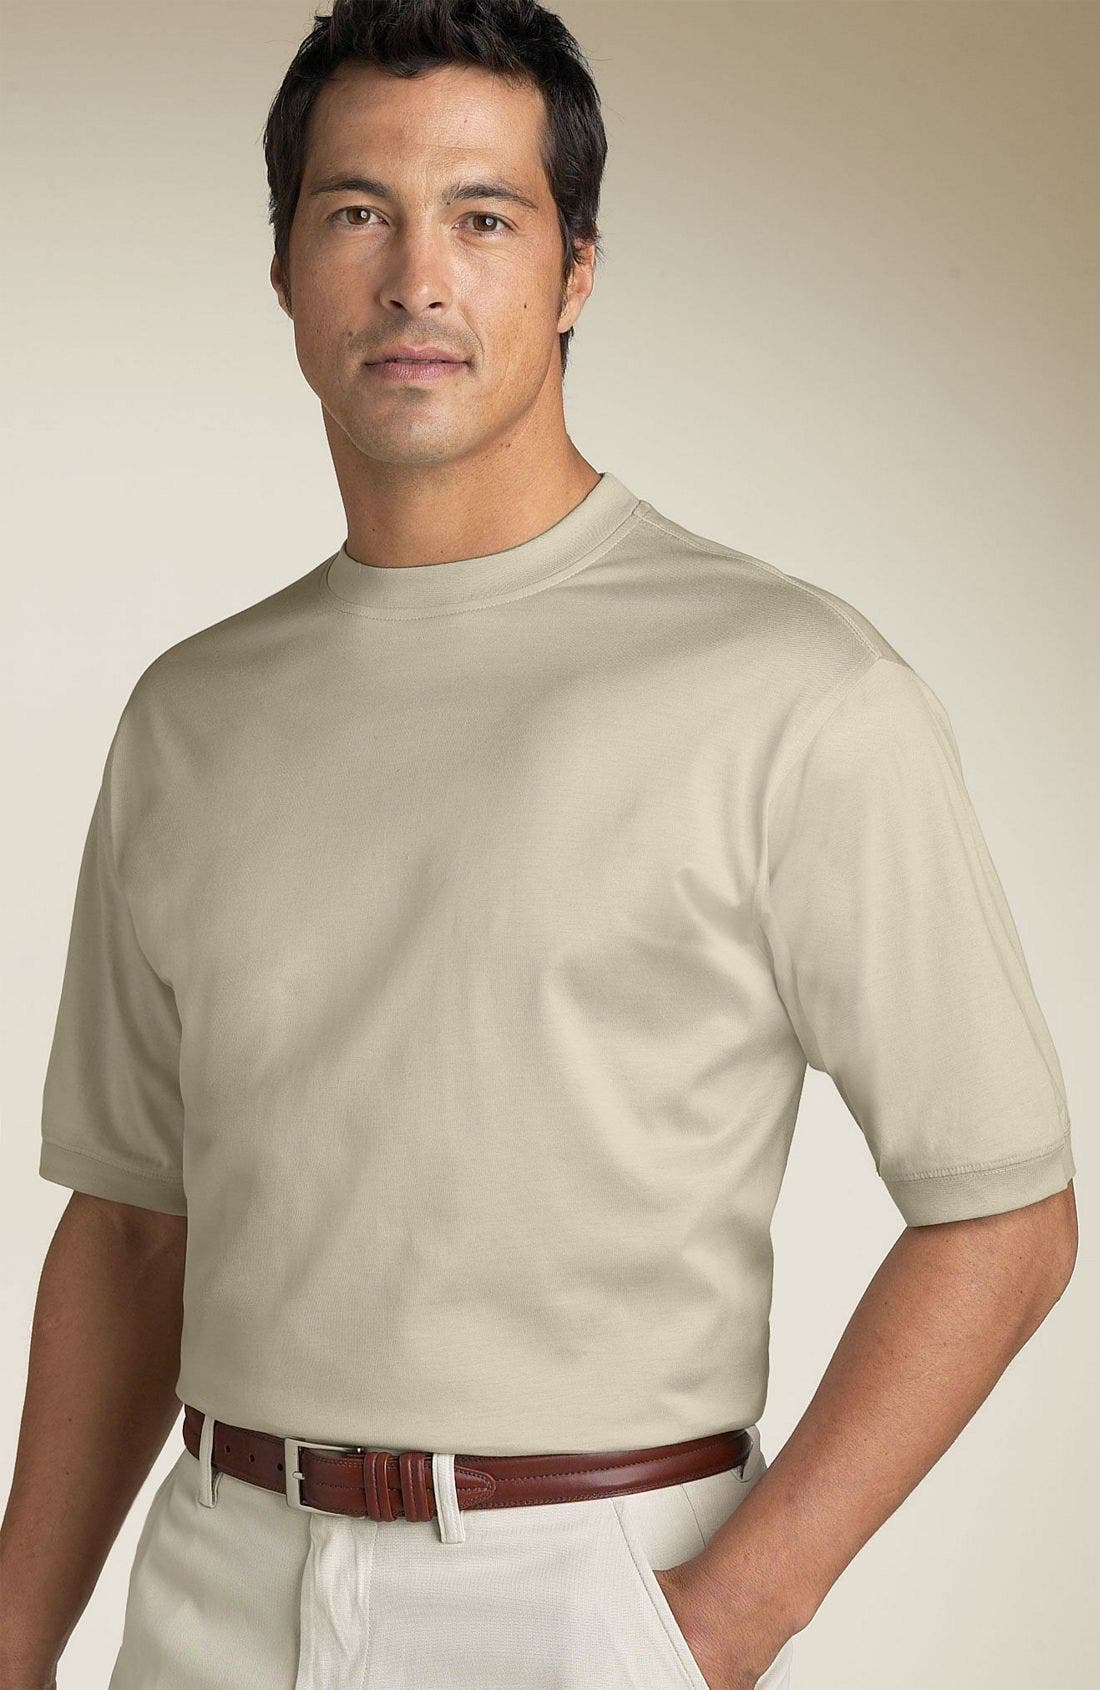 Alternate Image 1 Selected - Tricots St. Raphael® Mercerized Cotton T-Shirt